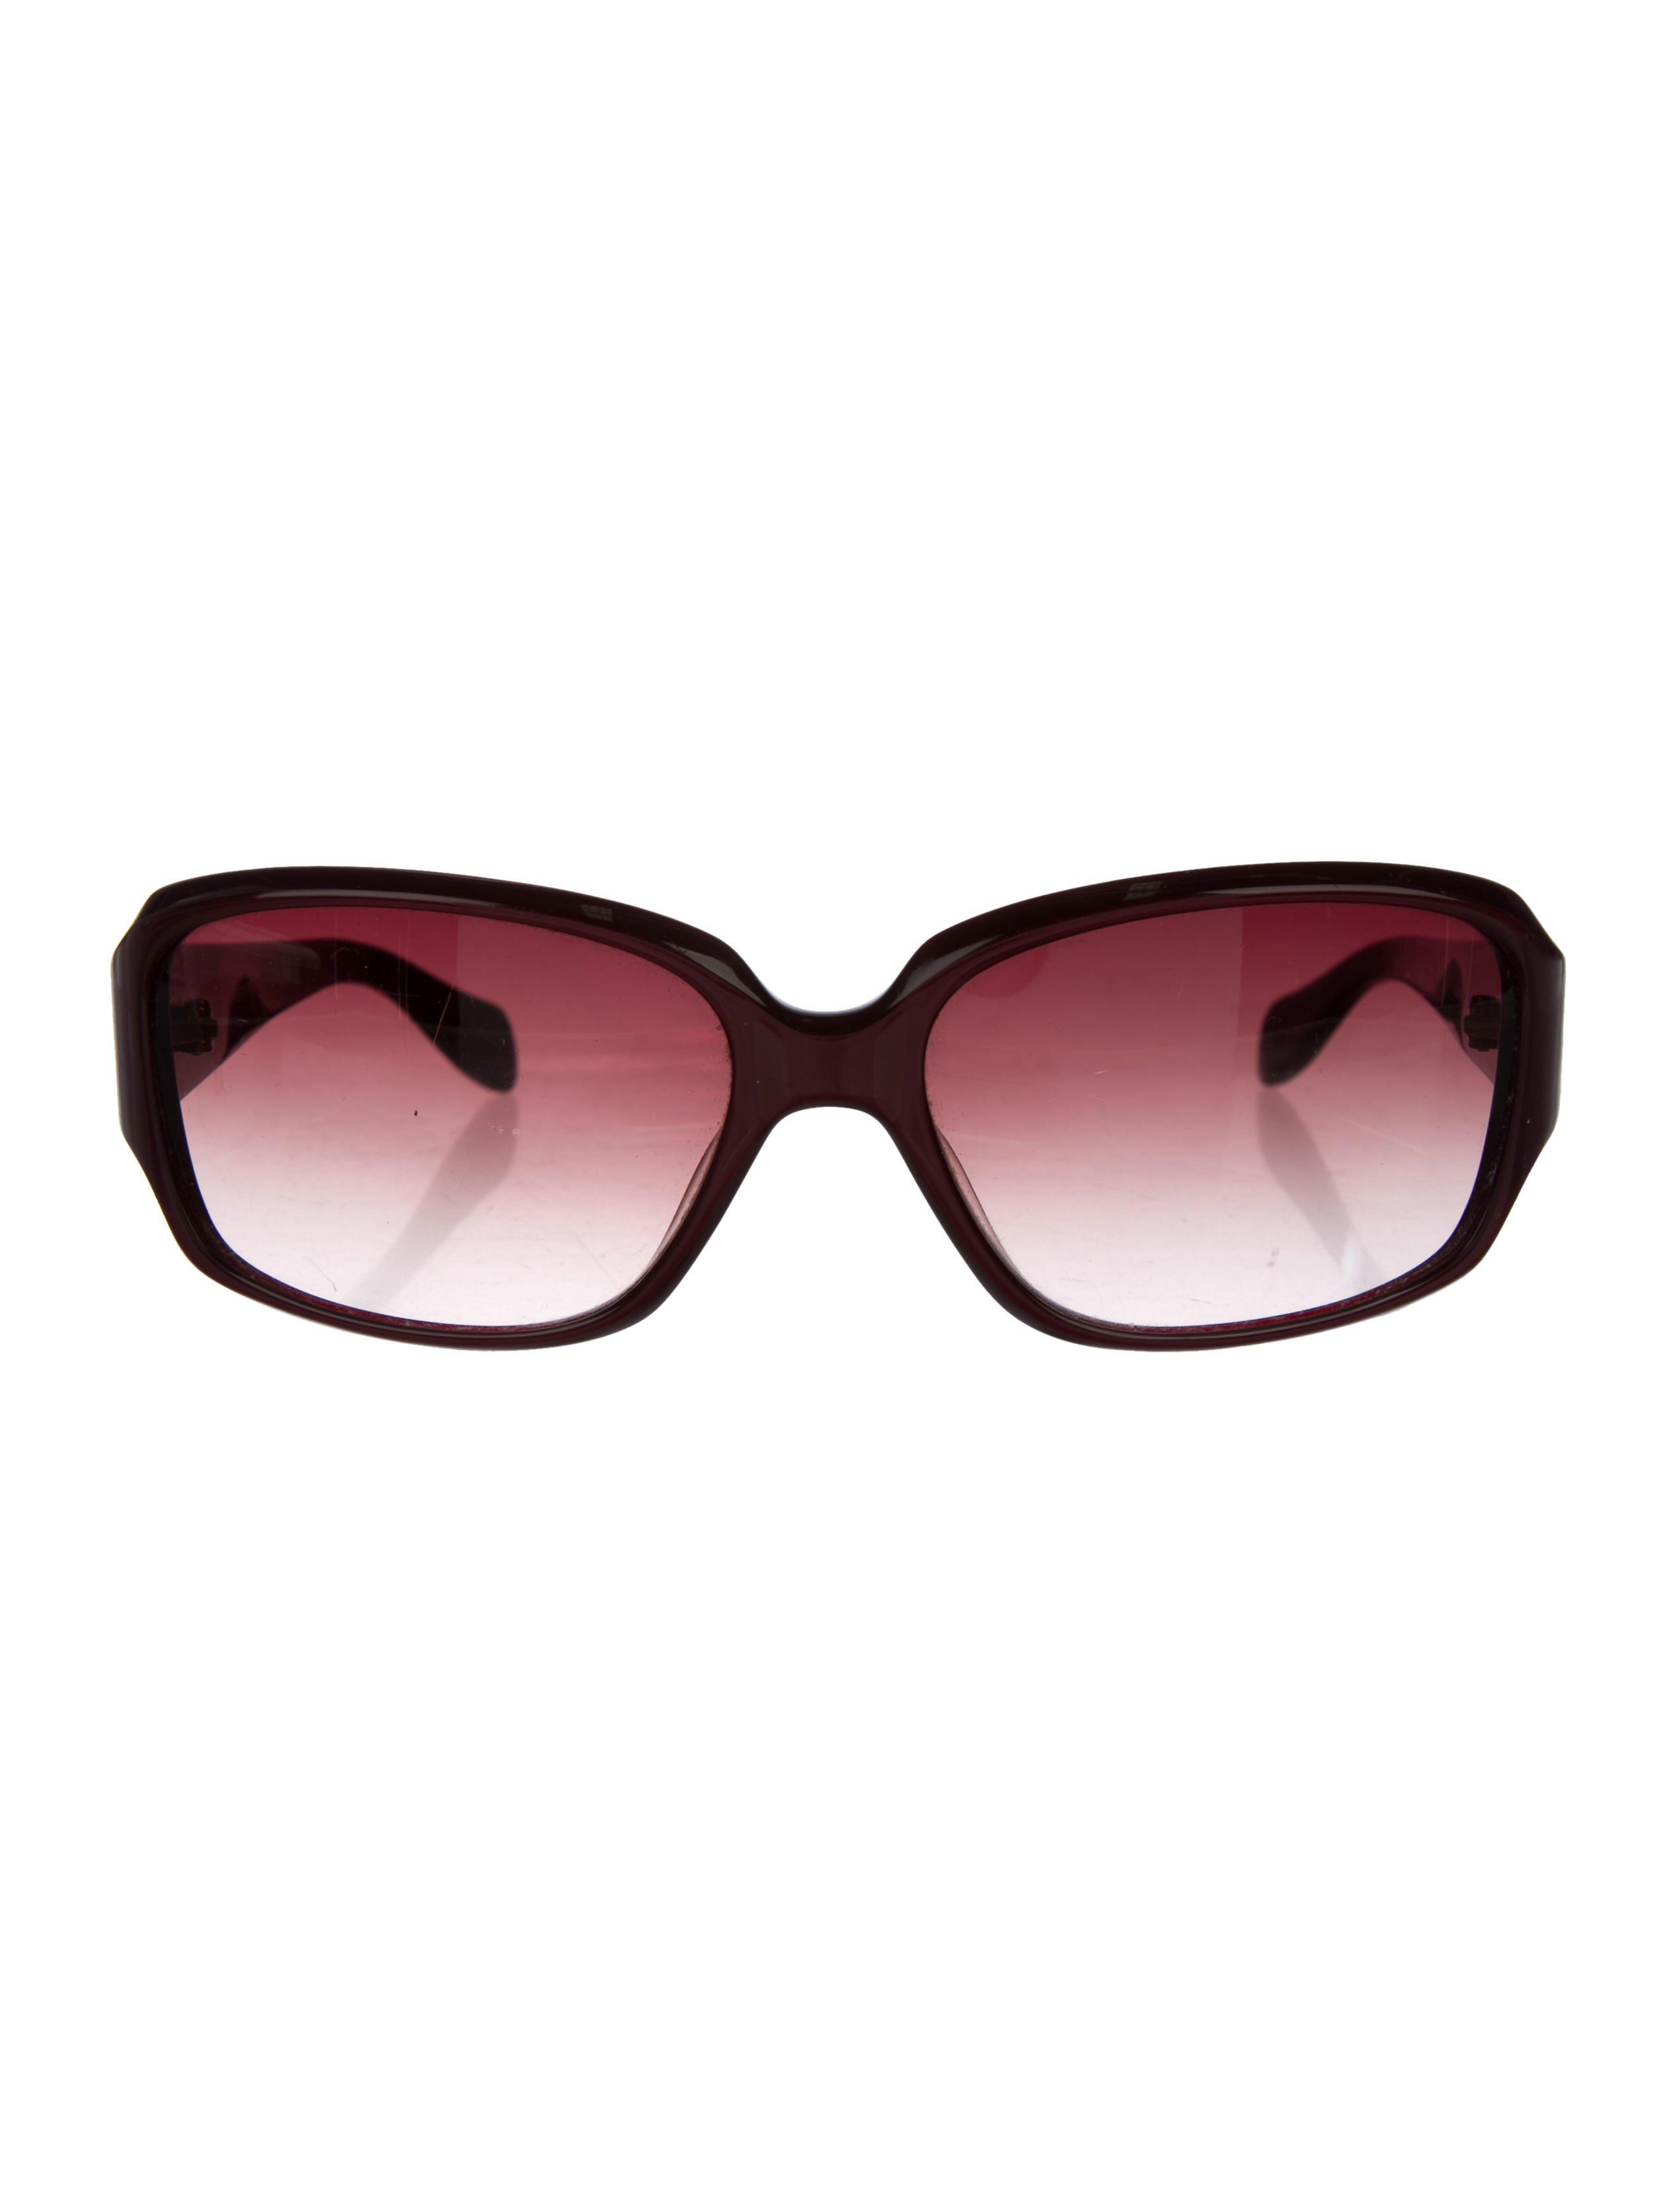 a9d2fd28fdb2 Lyst - Oliver Peoples Hayworth Gradient Sunglasses Red in Metallic